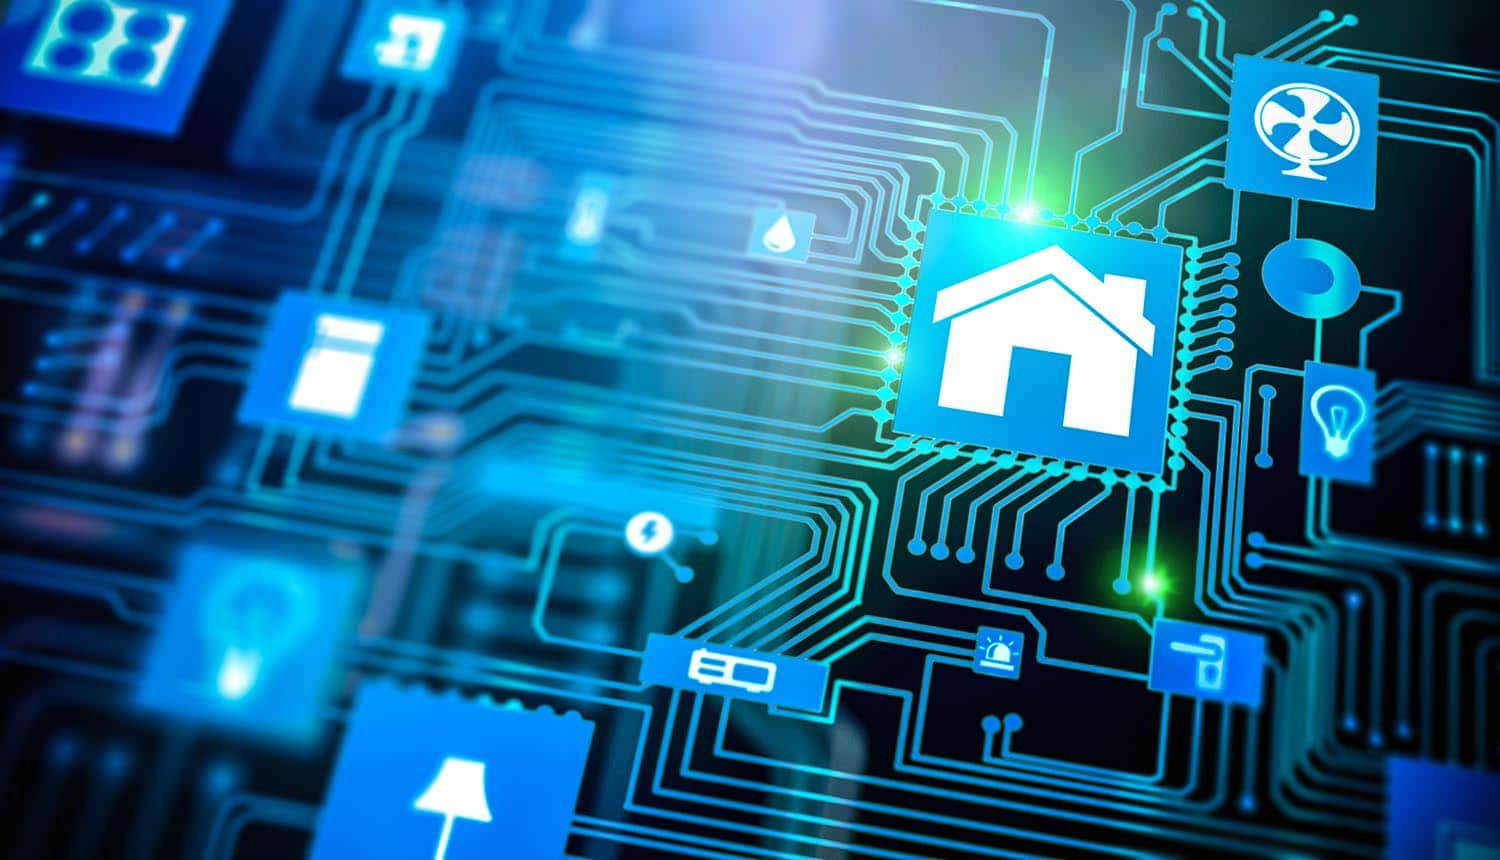 New Study Highlights IoT Security and Privacy Flaws in Popular Off the Shelf Devices